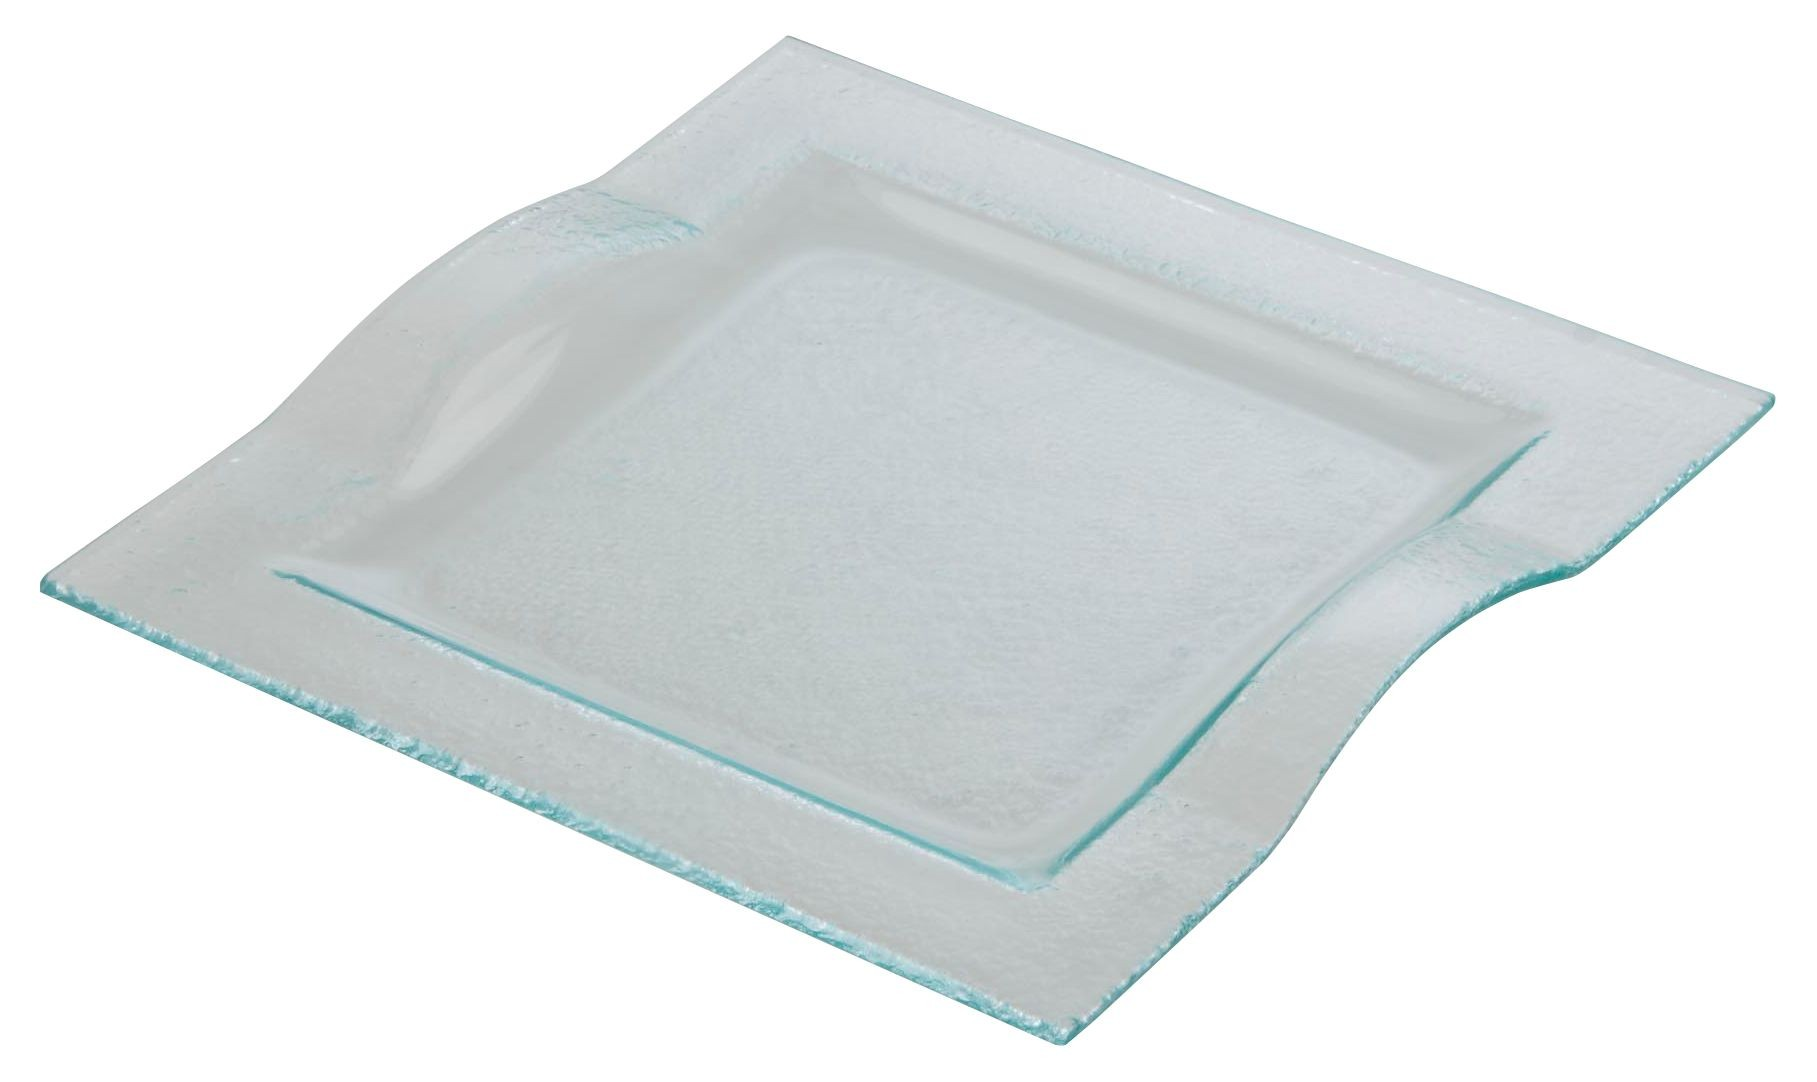 Square Plate with Handles 29.6 x 29.3cm